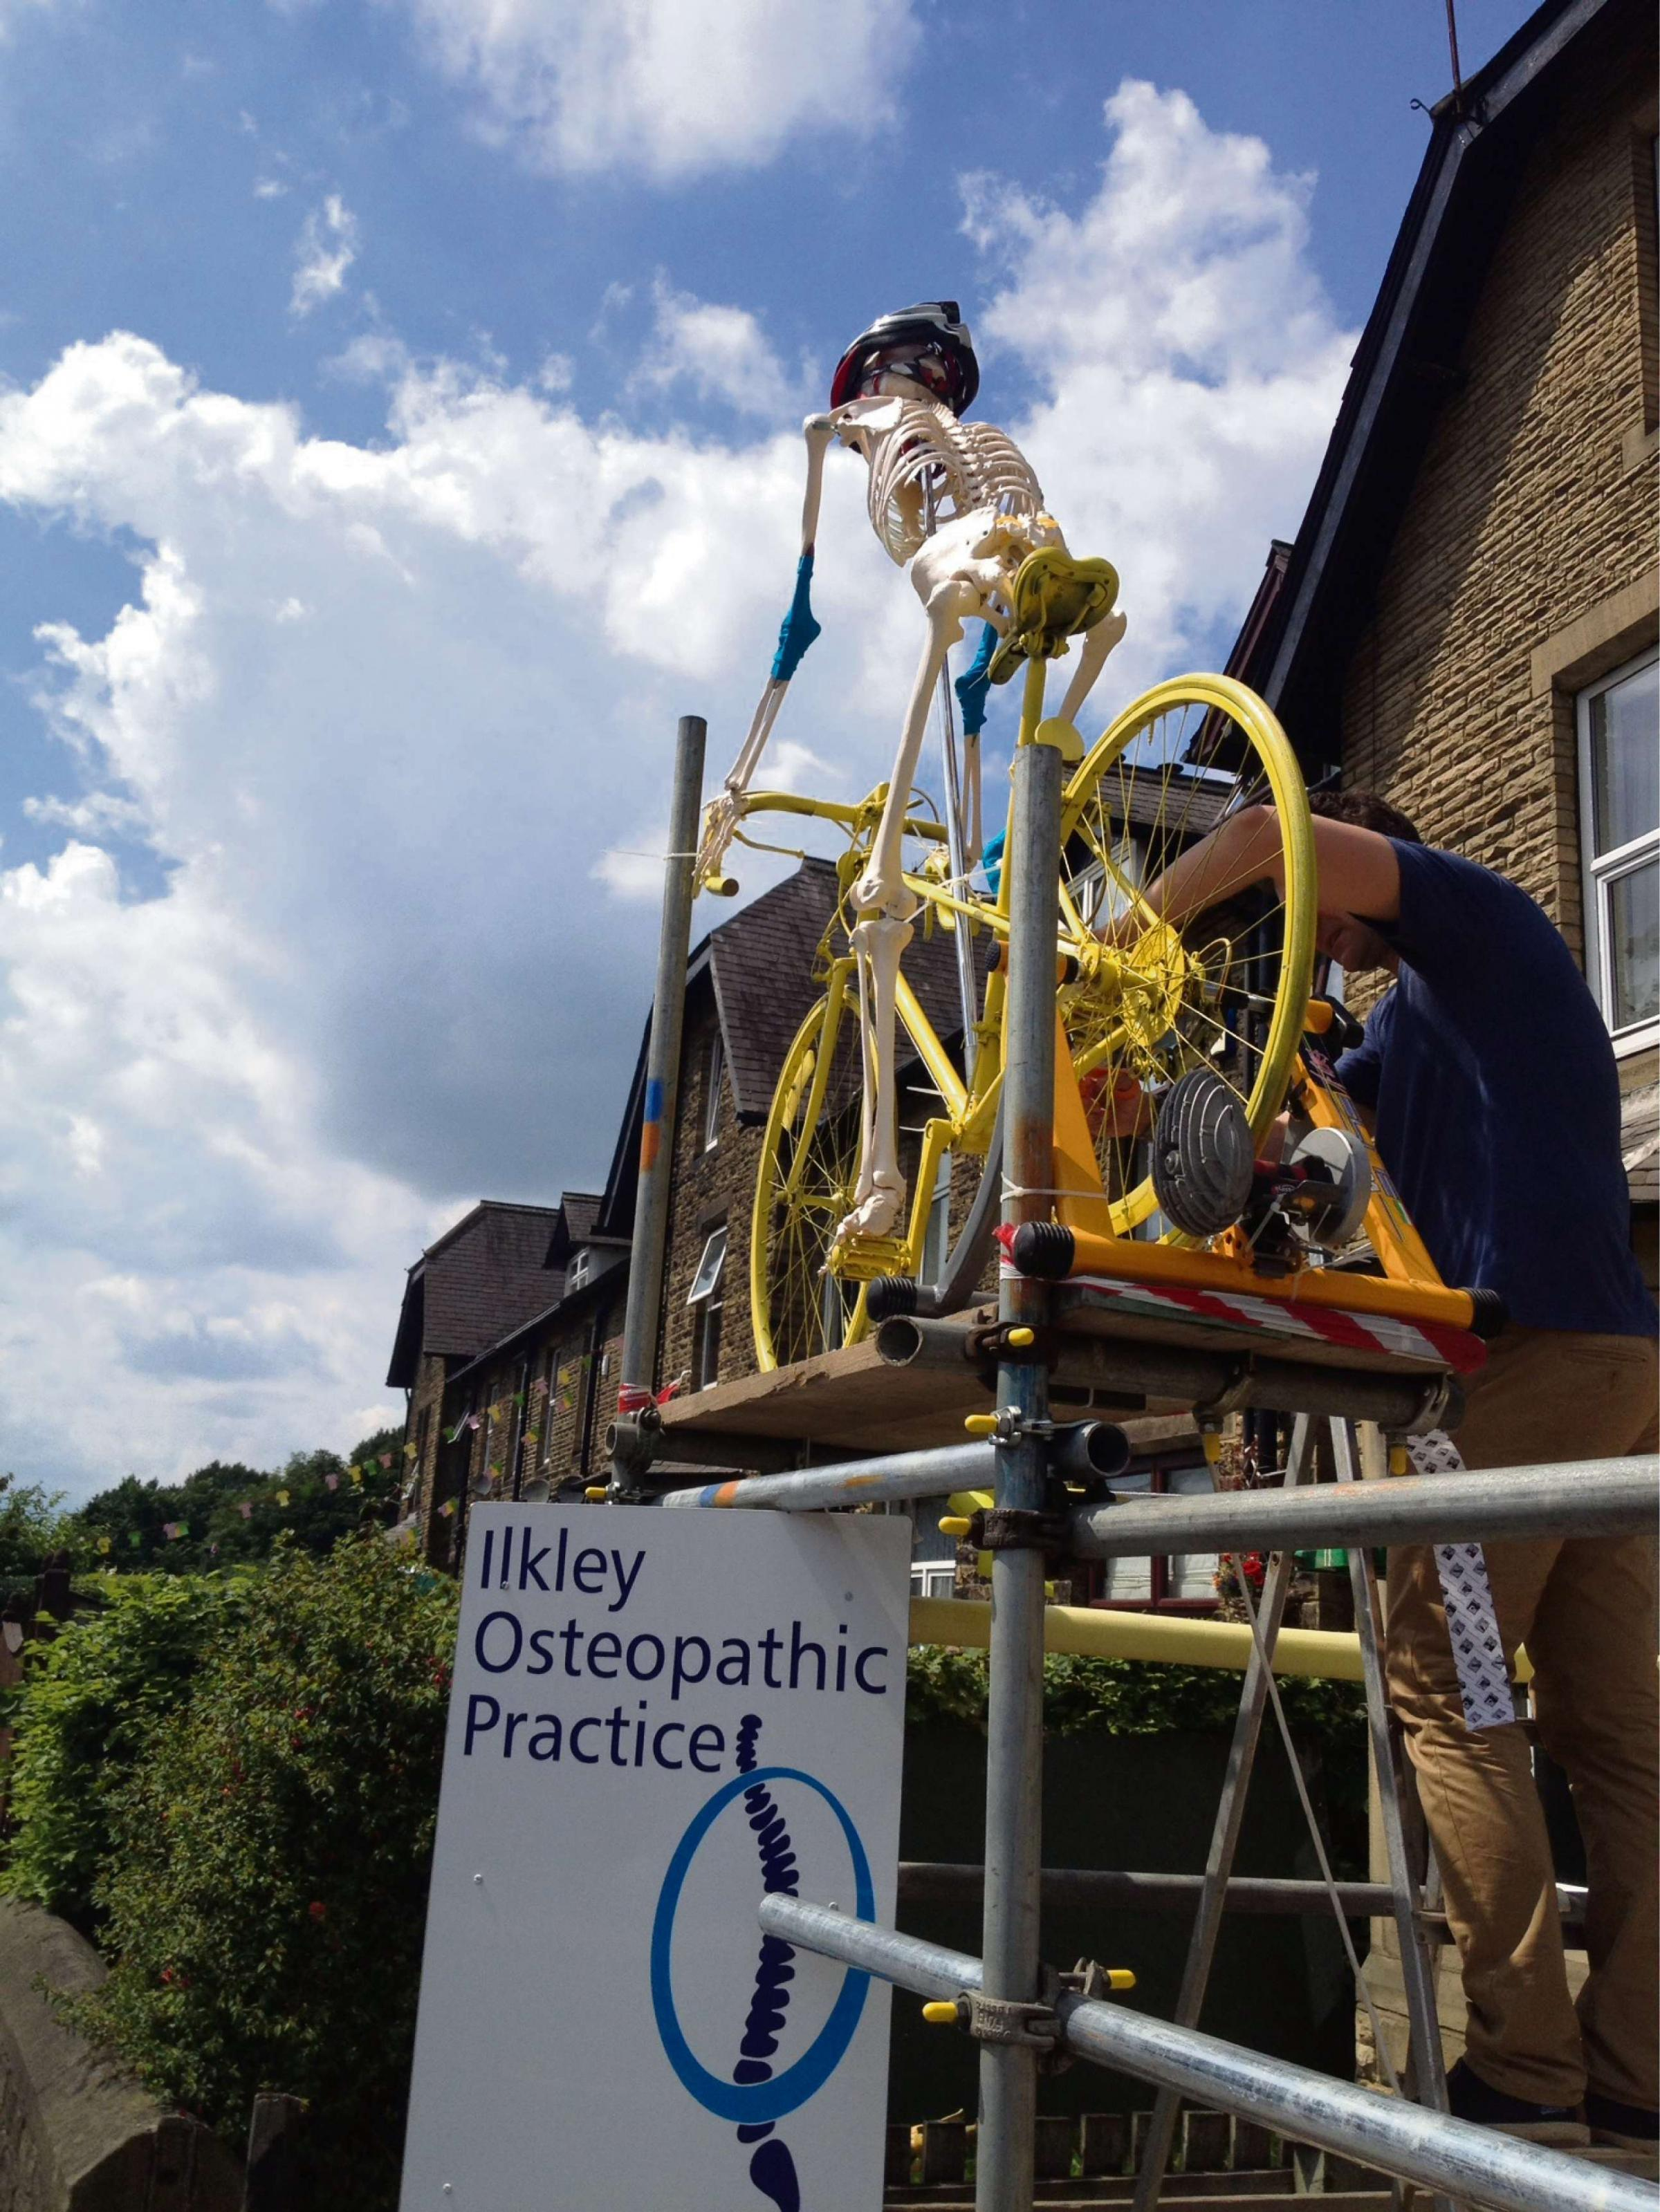 VIDEO: 'Skeleton Steve' gets on his bike at Ilkley osteopaths for Tour de France